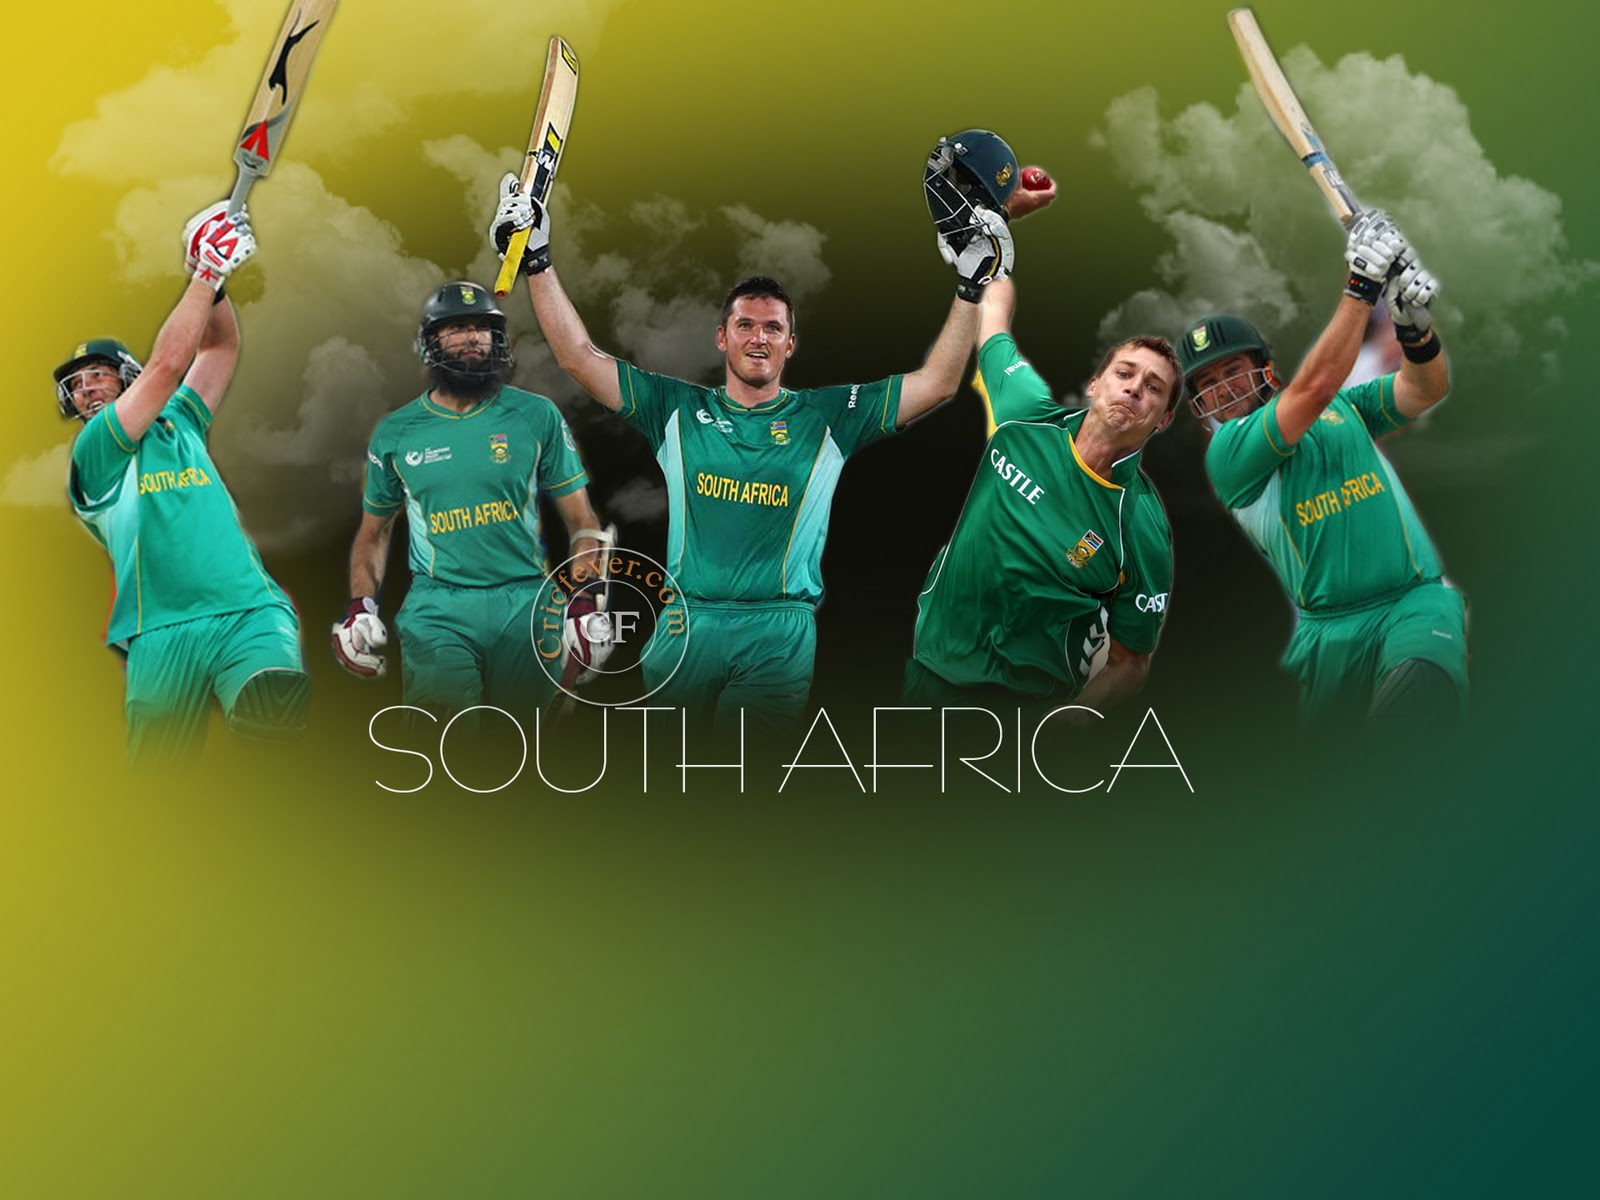 South Africa Team Wallpapers - Polling For Sports Competition *November 2012*